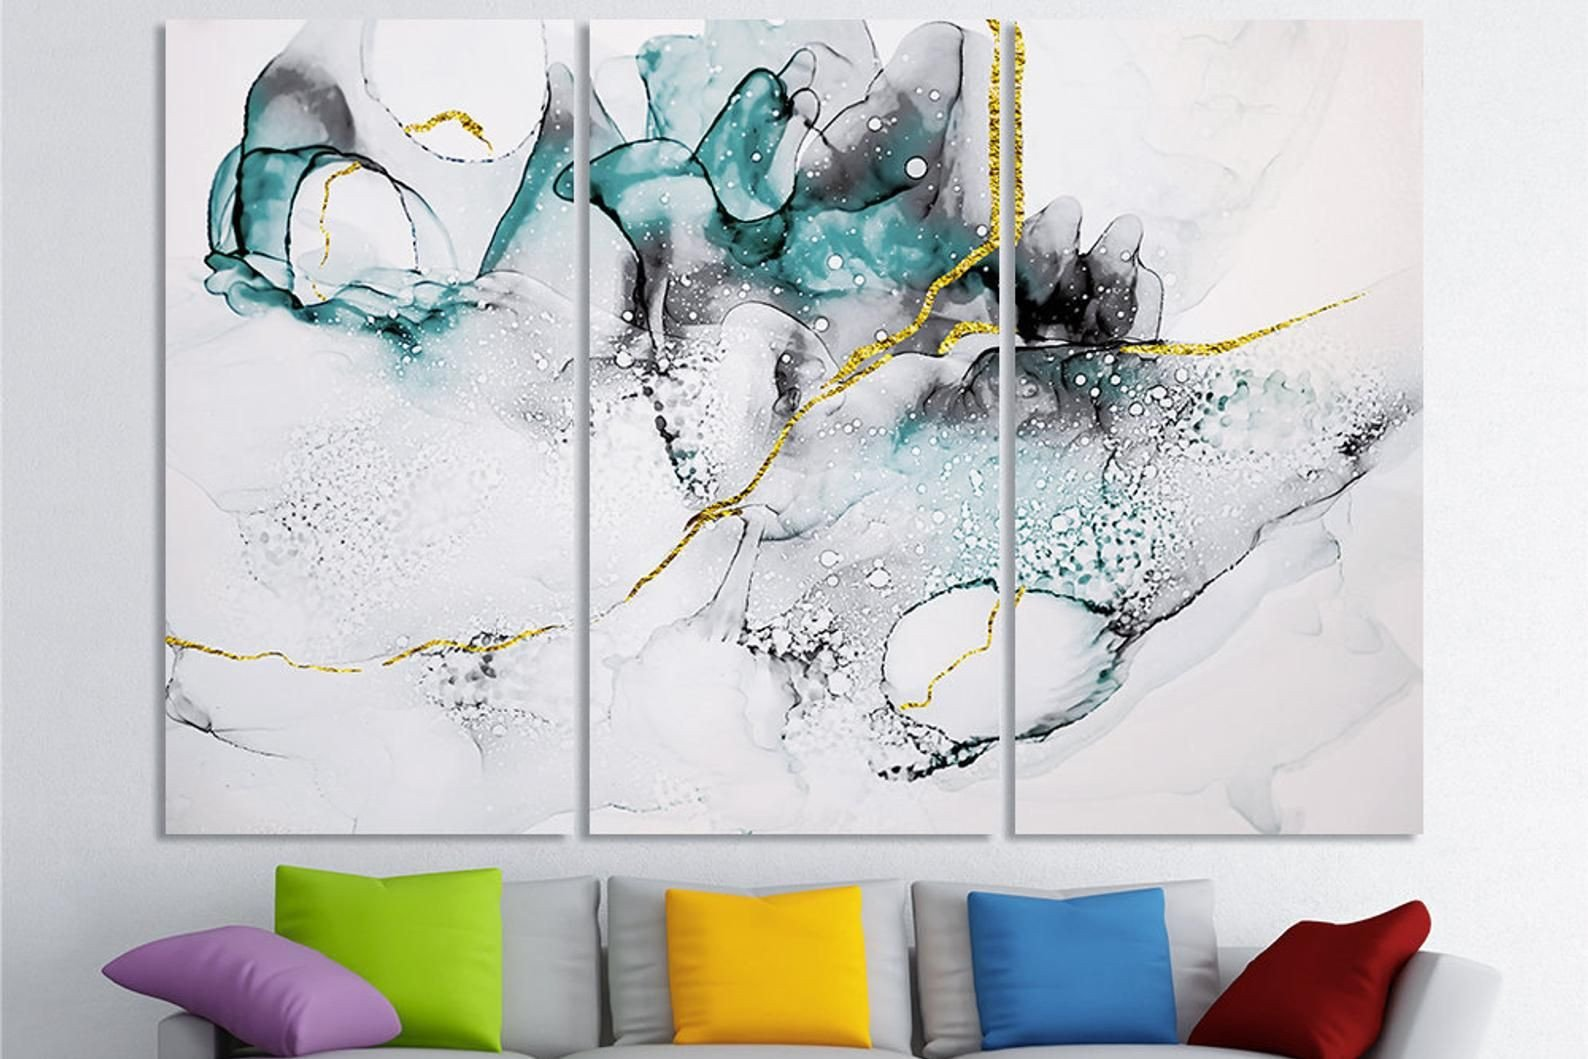 Artwork for Bedroom Wall Awesome Abstract Wall Art Sets Bedroom Wall Art Living Room Wall Art